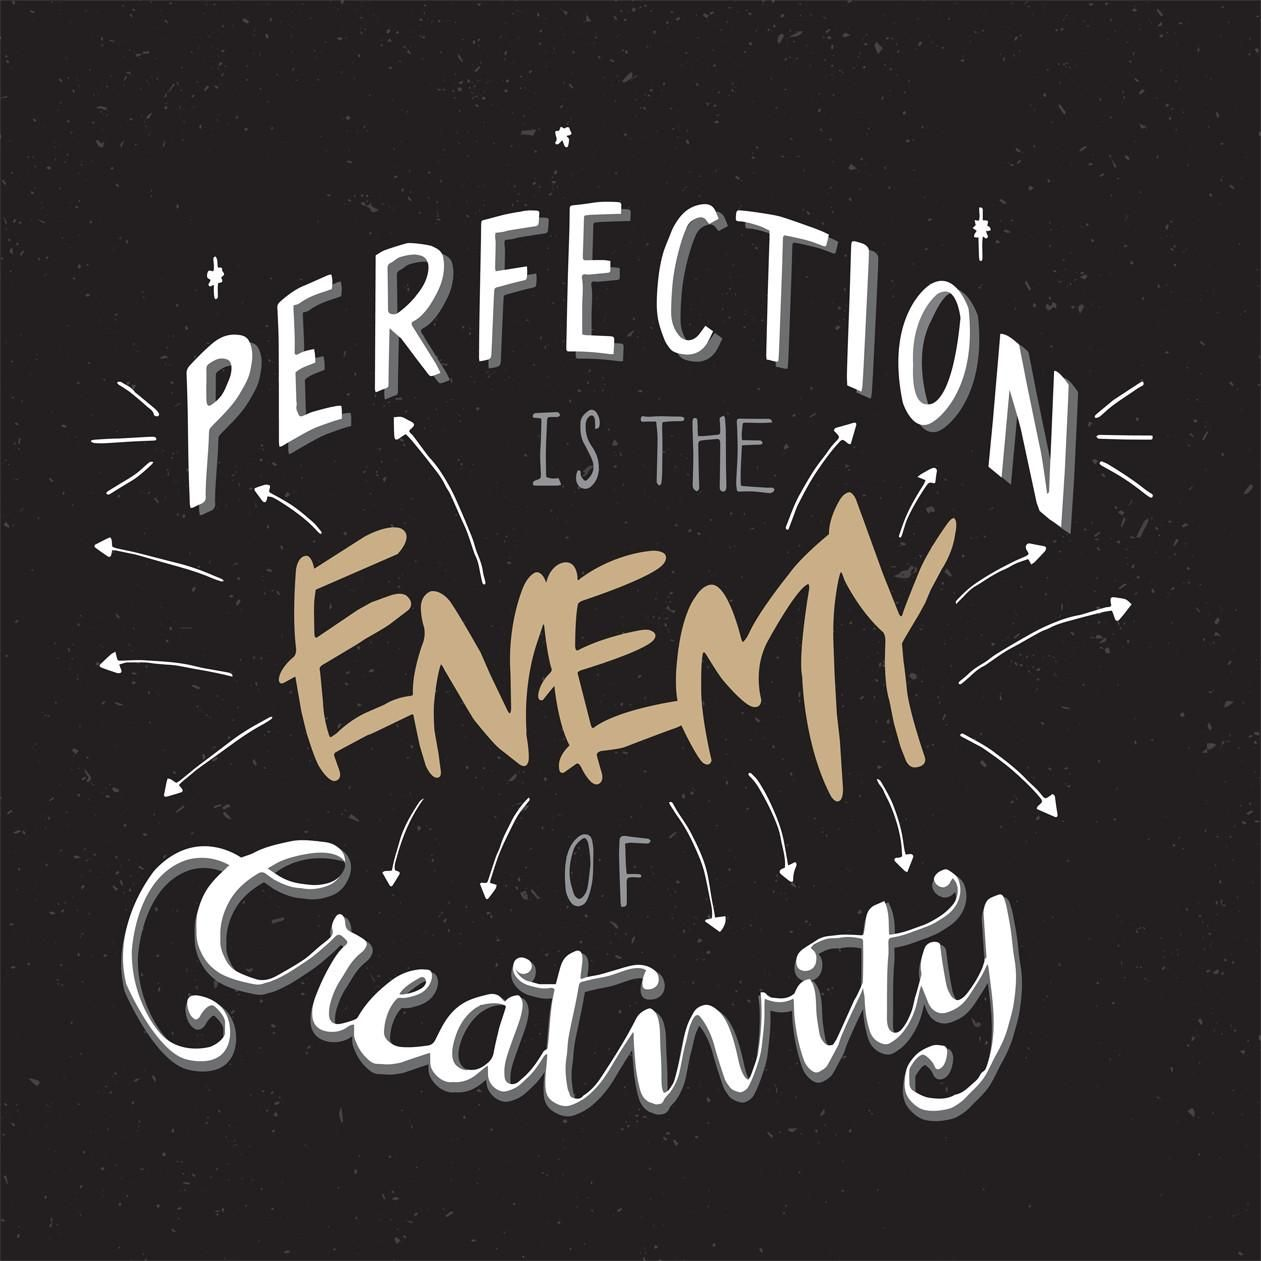 Perfection Is Enemy Of Creativity